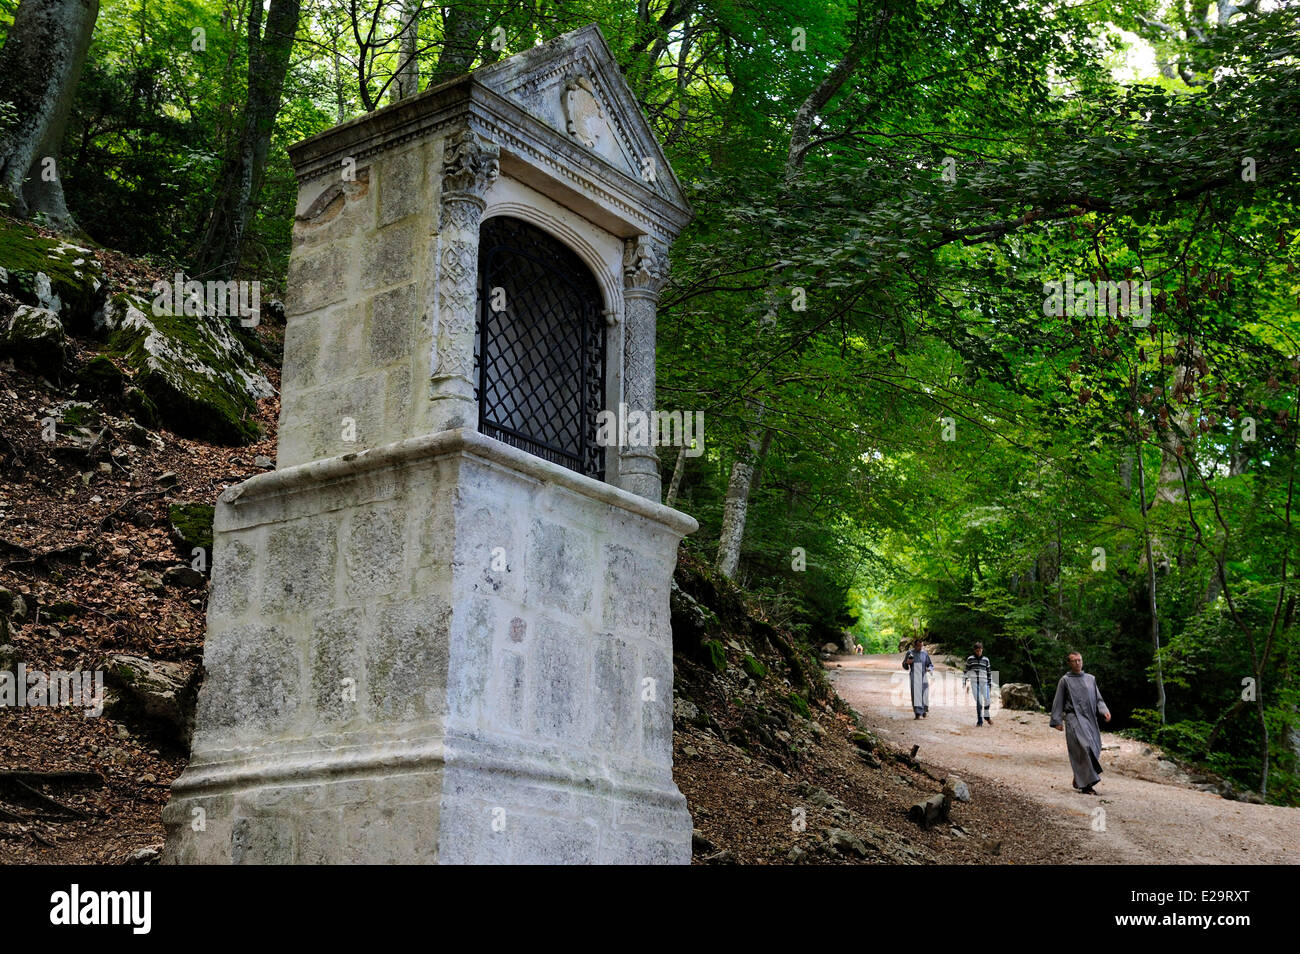 France, Var, Massif de la Sainte Baume, sanctuary of St Mary Magdalene - Stock Image